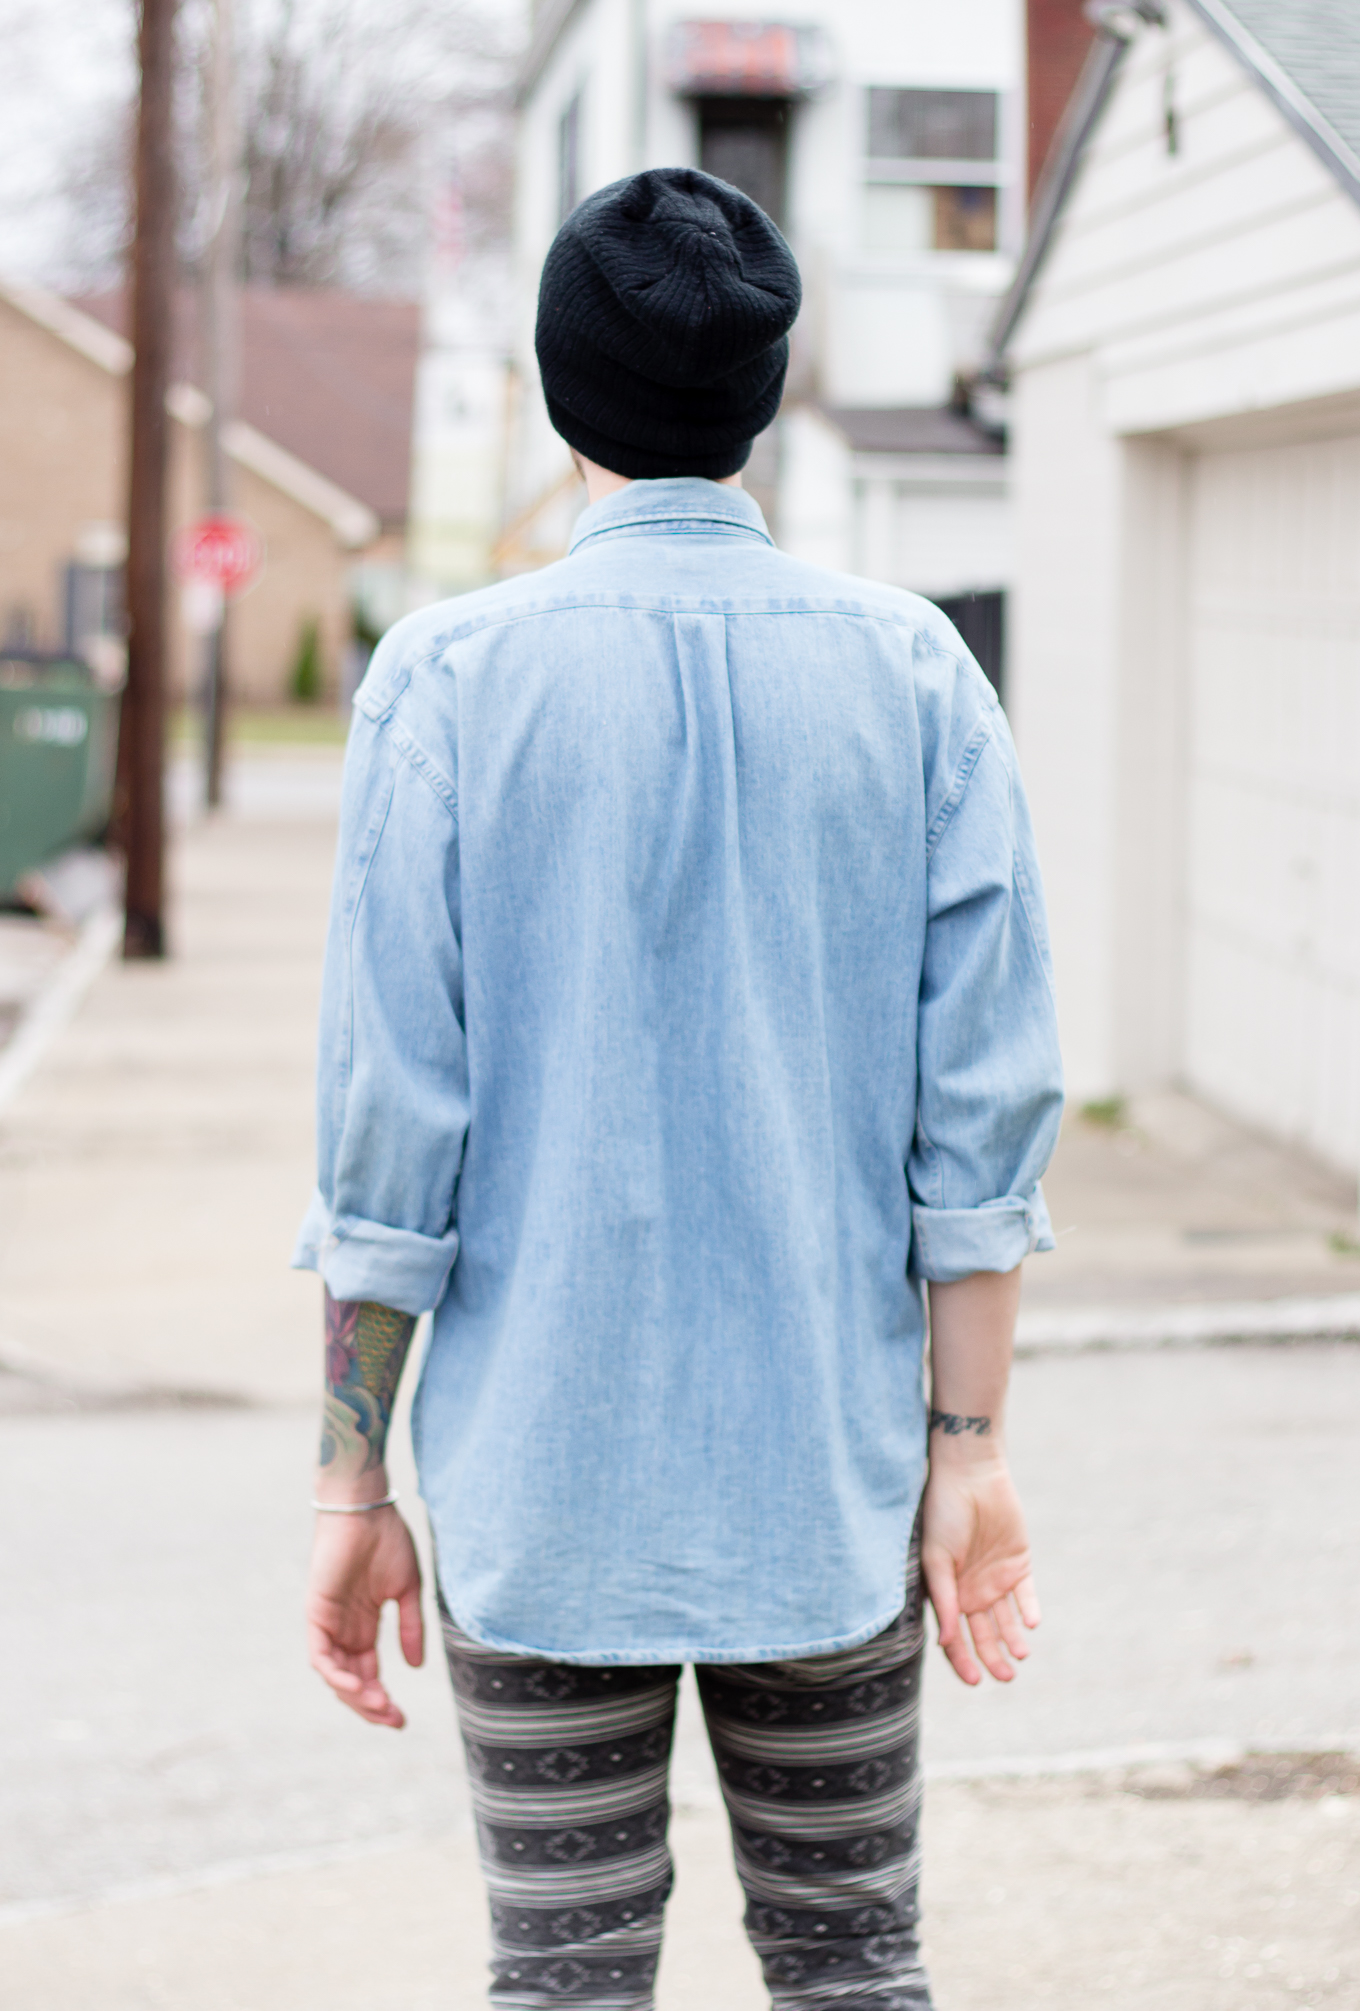 J. Crew Denim Shirt and Kill City Jeans - The Kentucky Gent